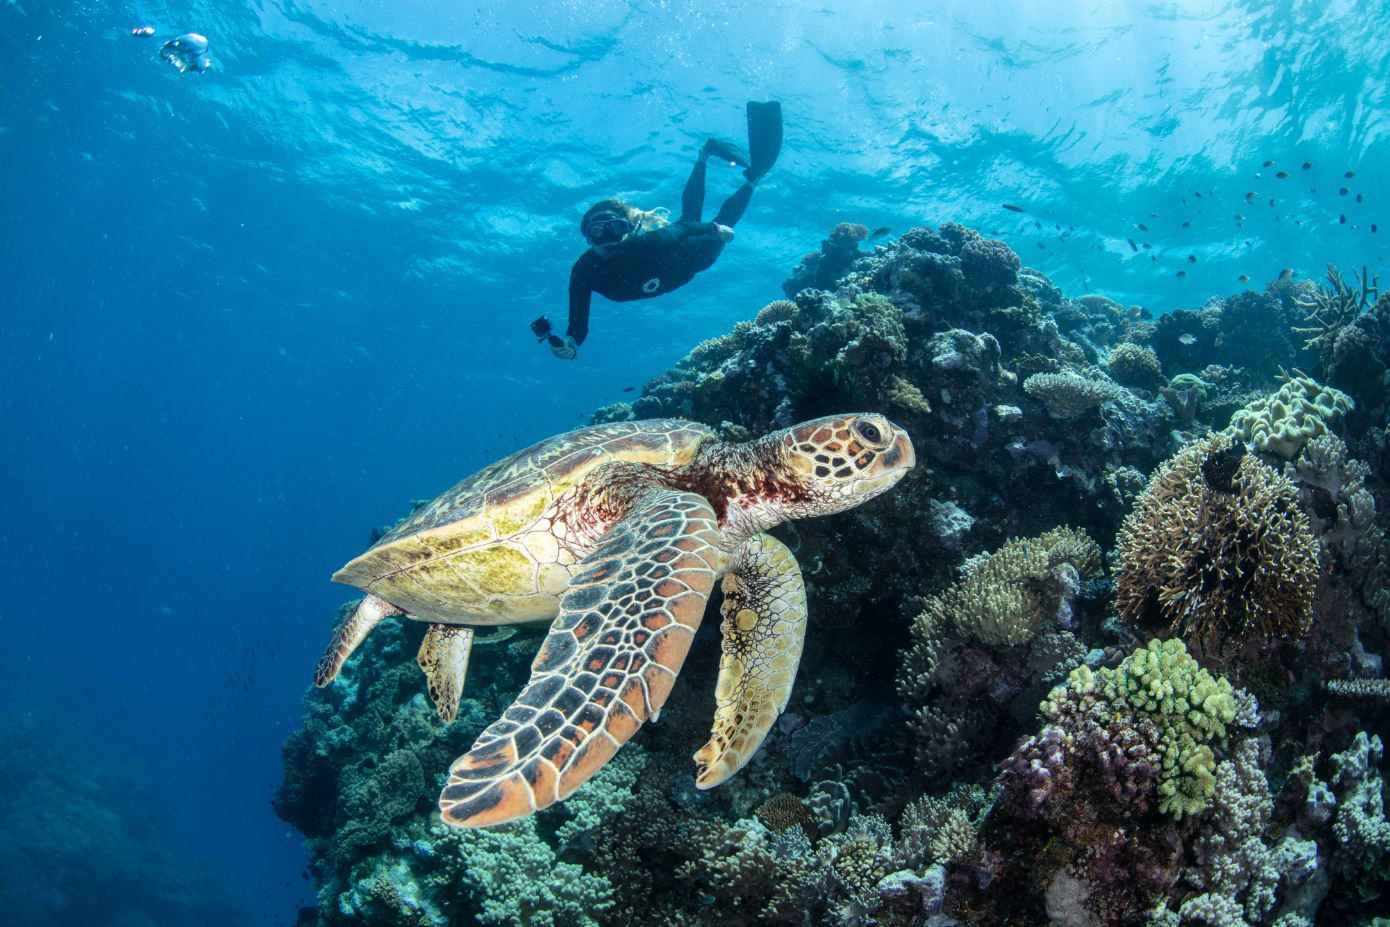 Great Reef Census participant spots a sea turtle, Milln Reef (must credit_ Citizens of the Great Barrier Reef)